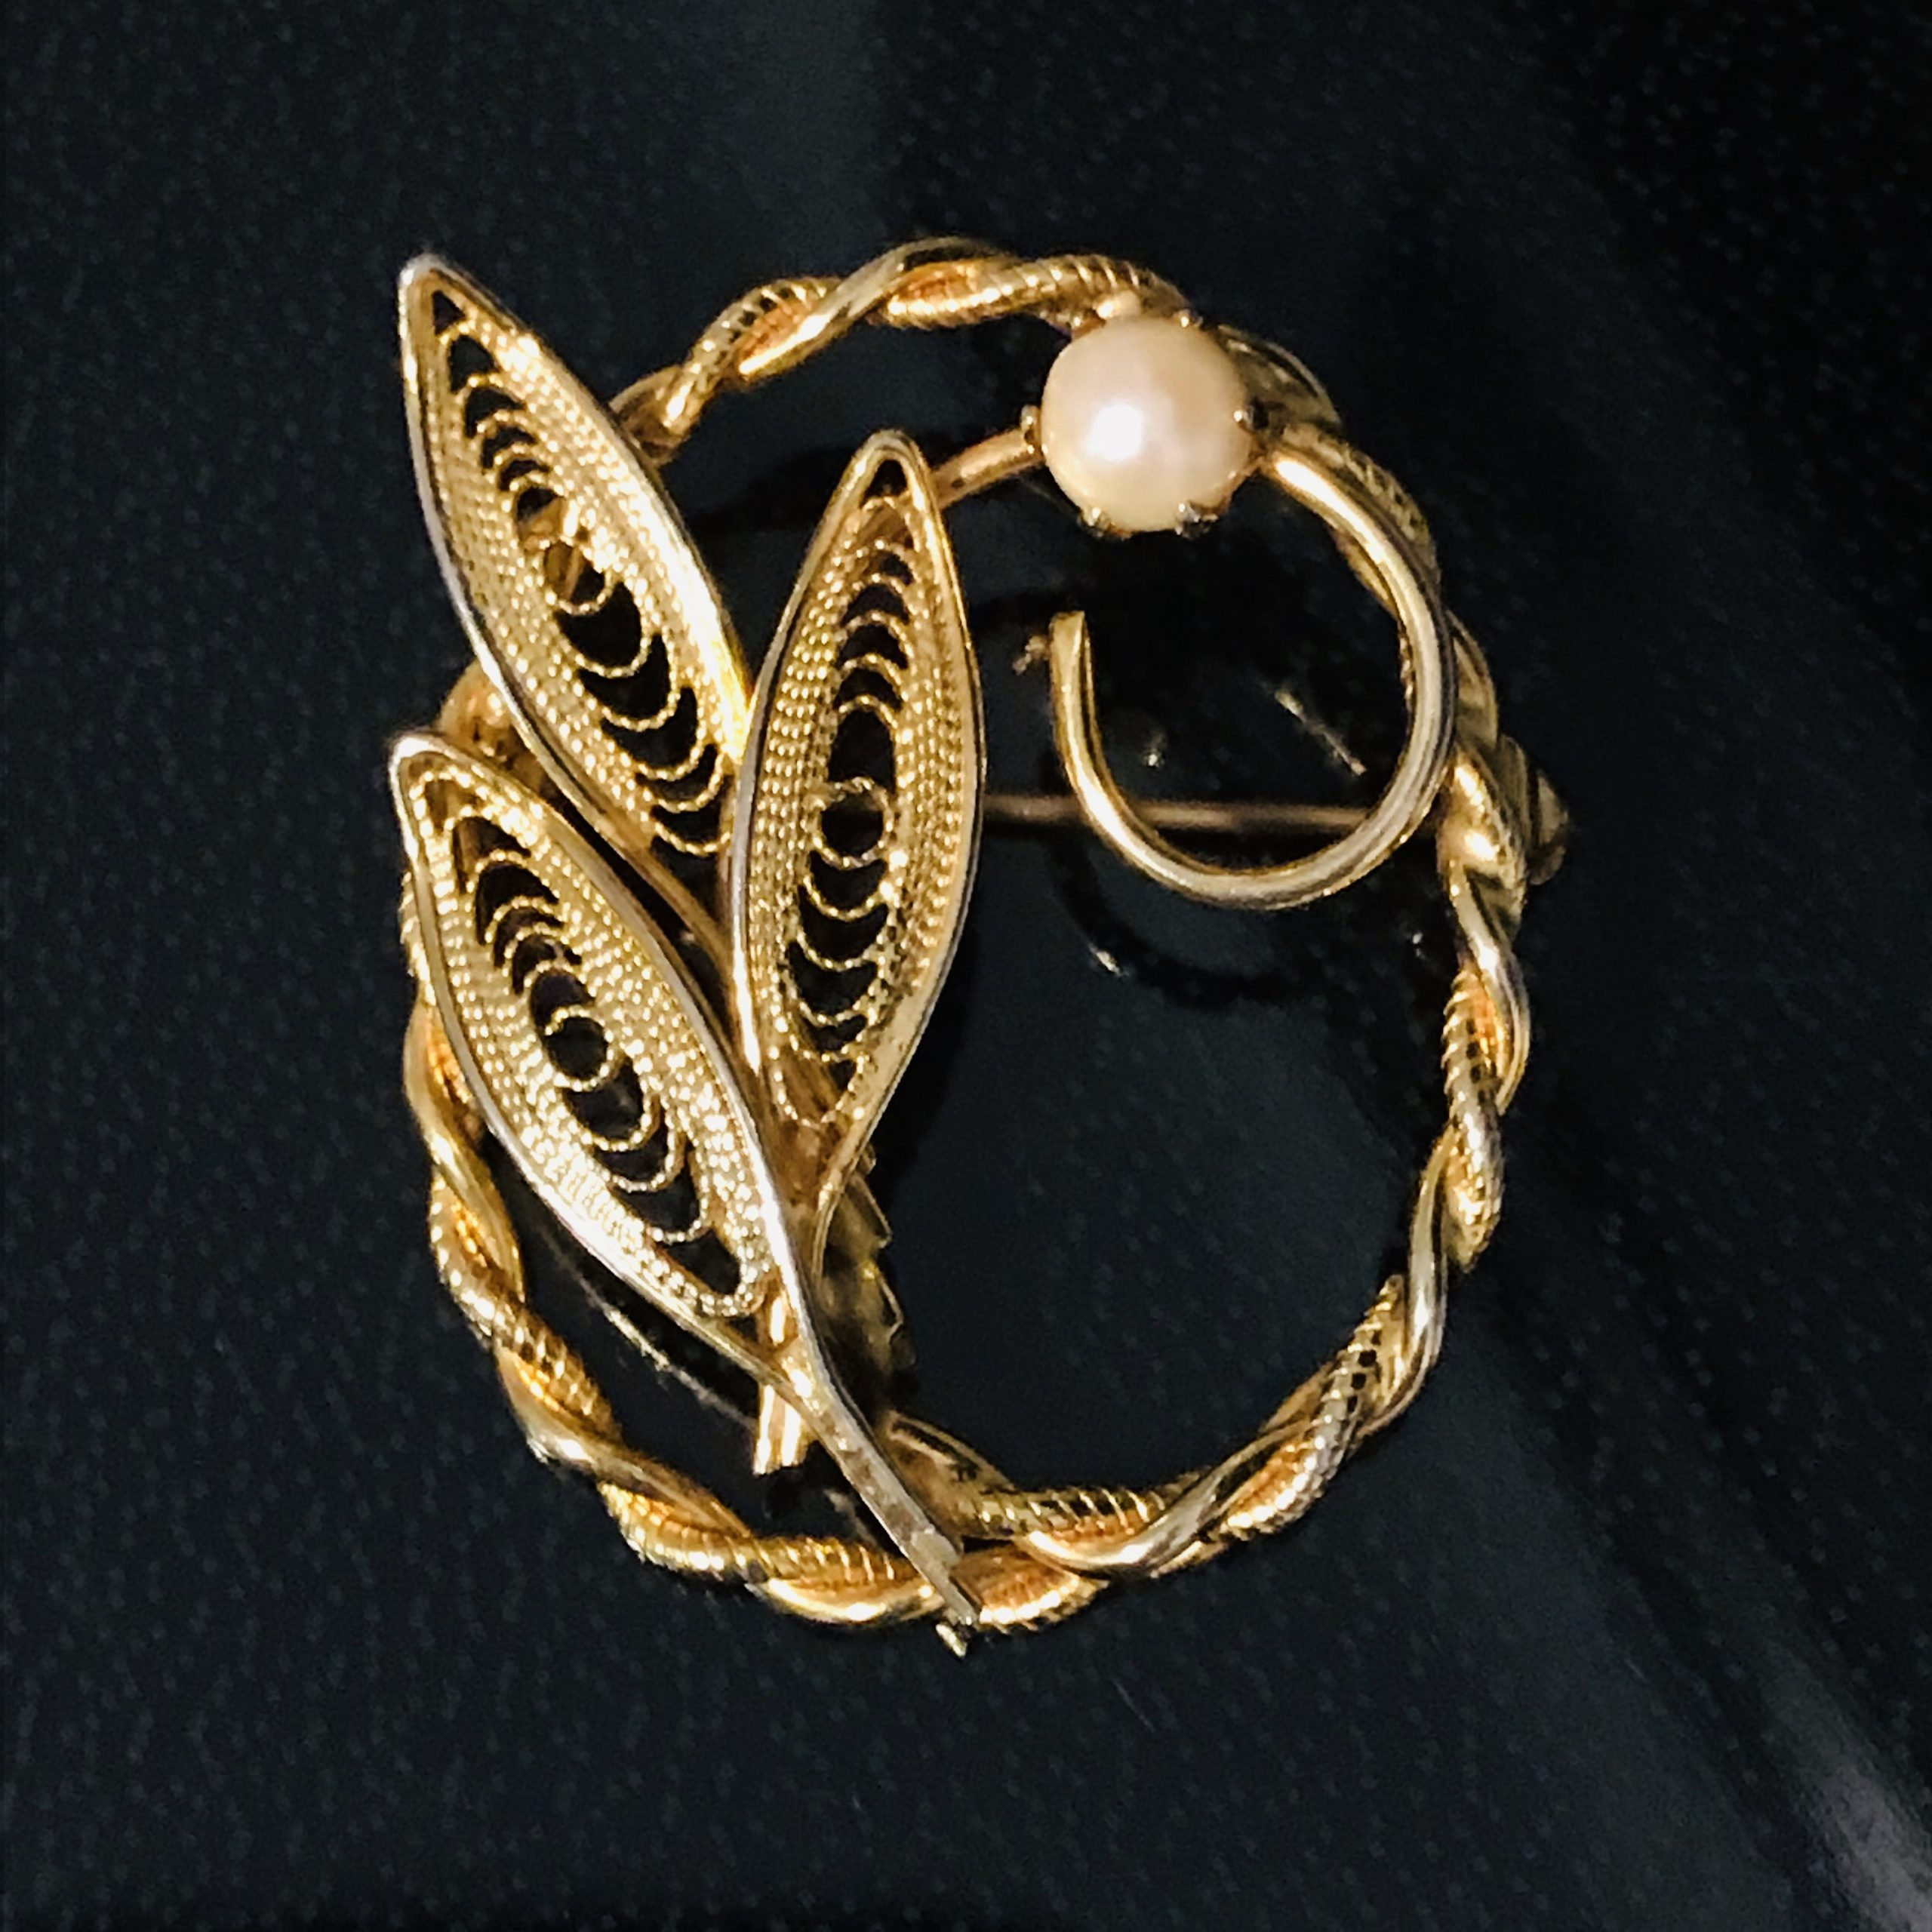 collectible jewelry Gold BroochPin vintage